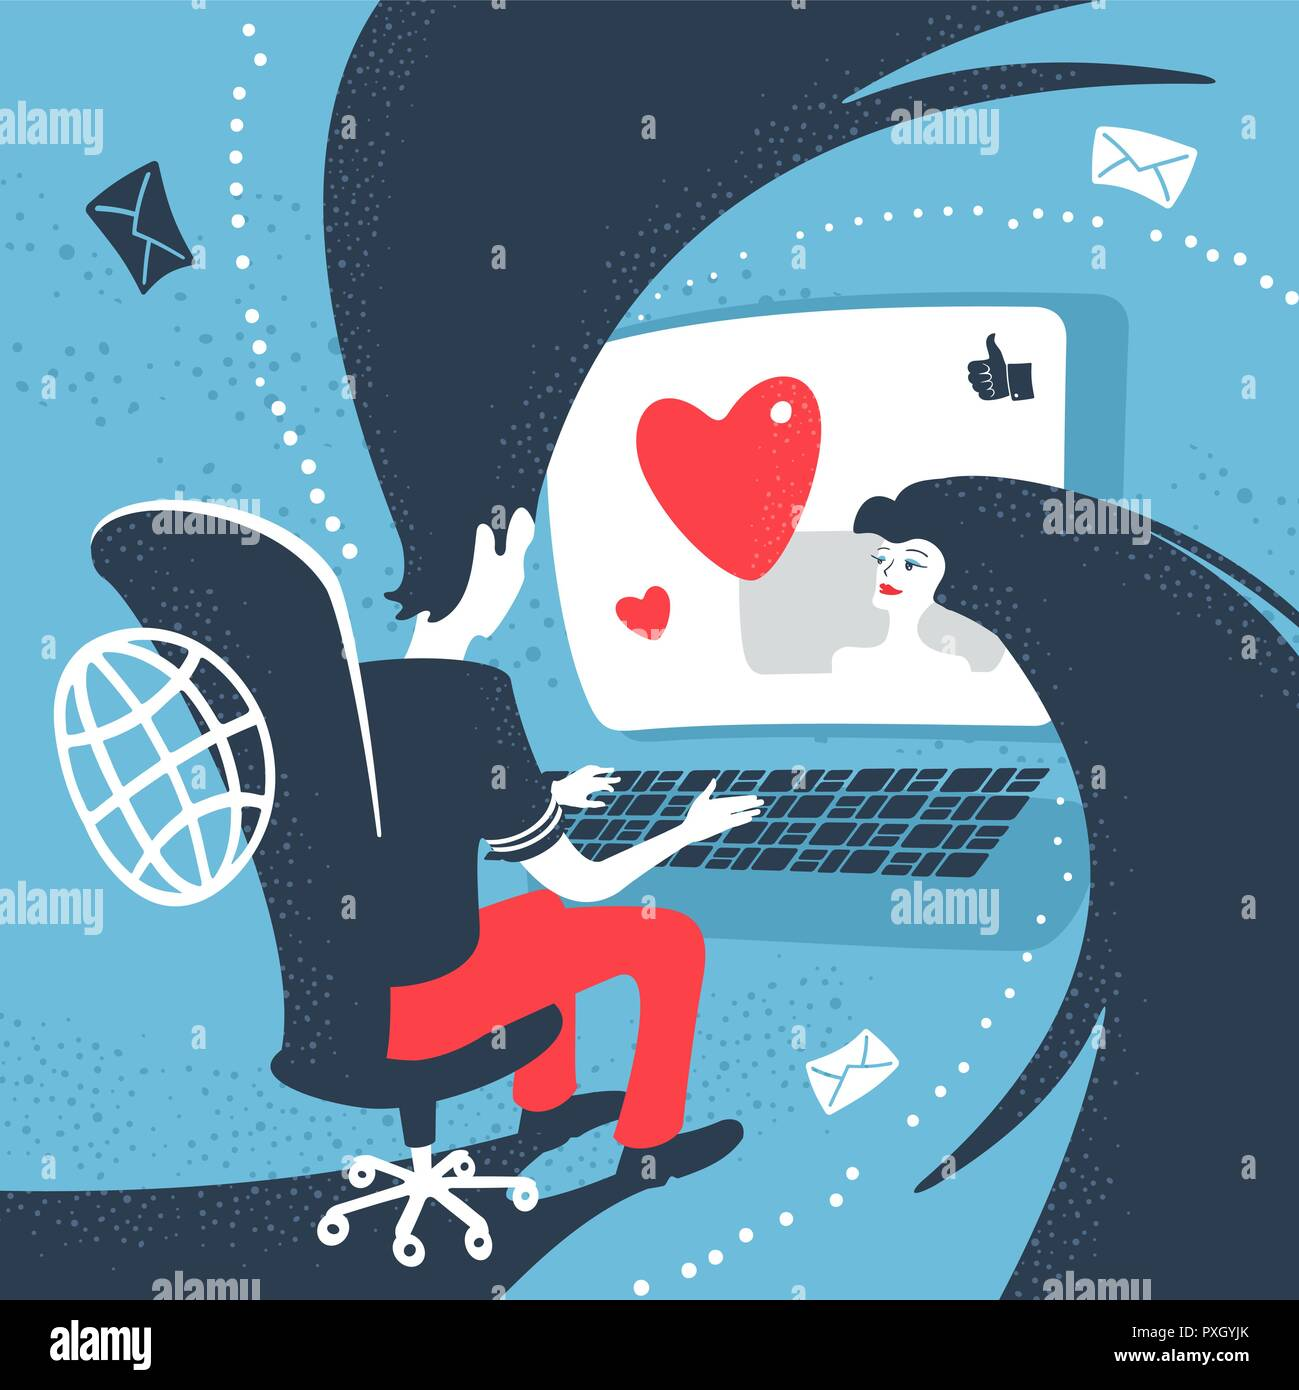 Guy and Girl Communicate Online Internet Concept - Stock Image